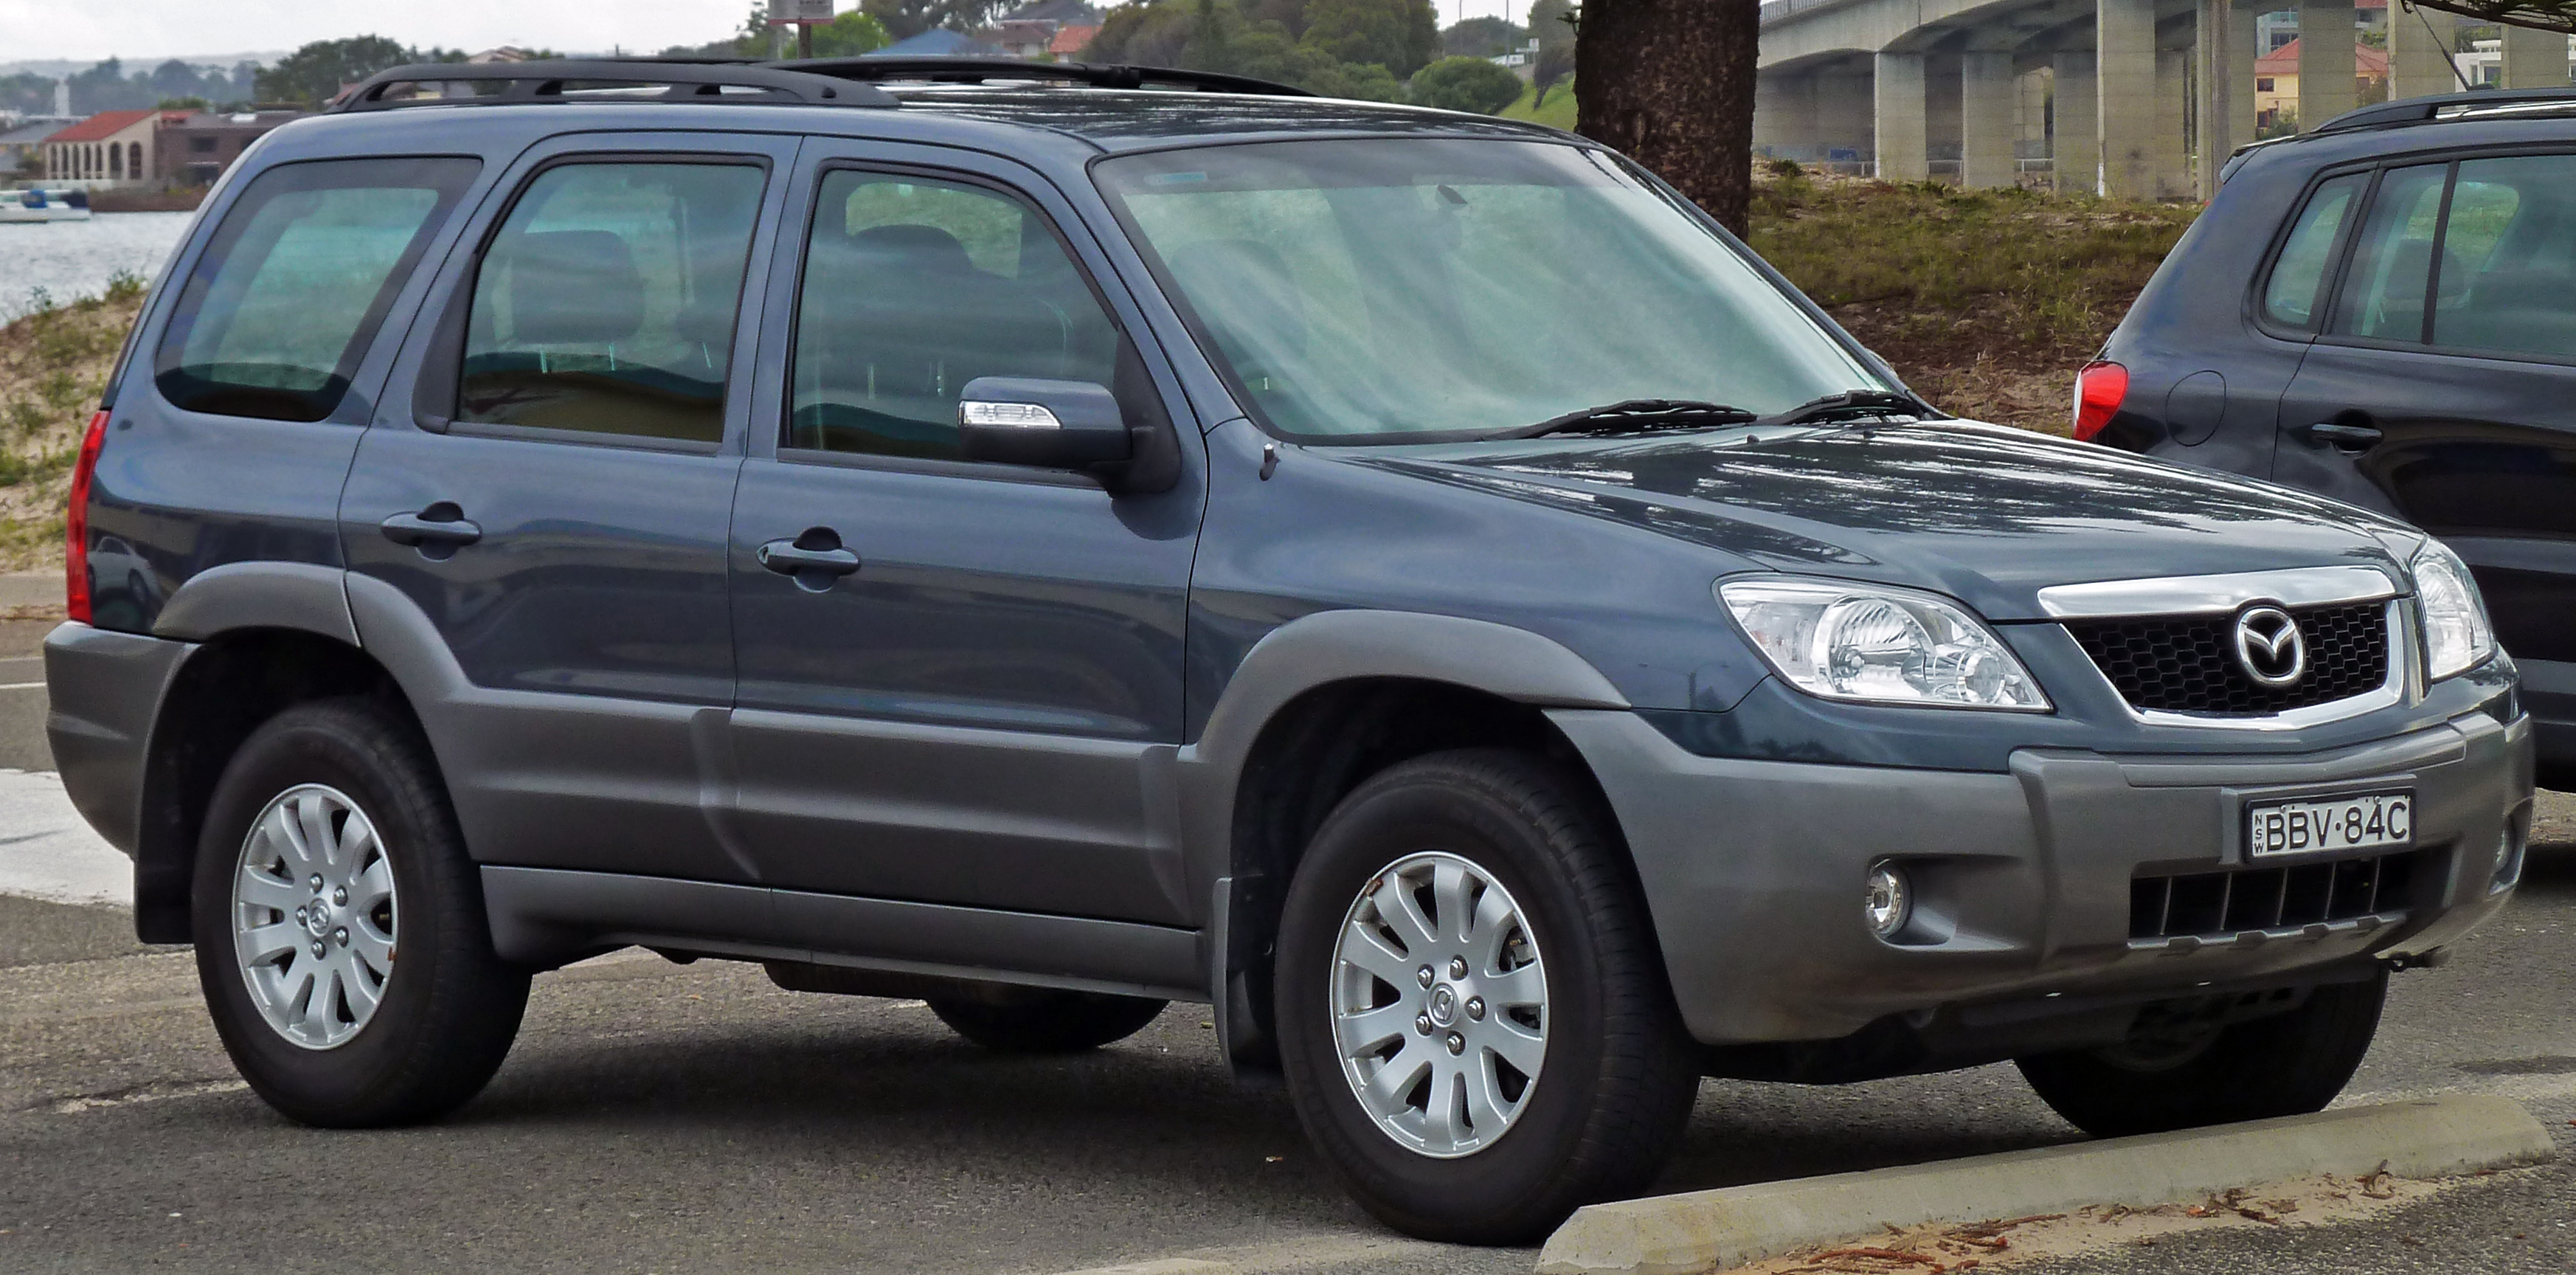 2007 mazda tribute (my06) v6 wagon (2010-09-19).jpg